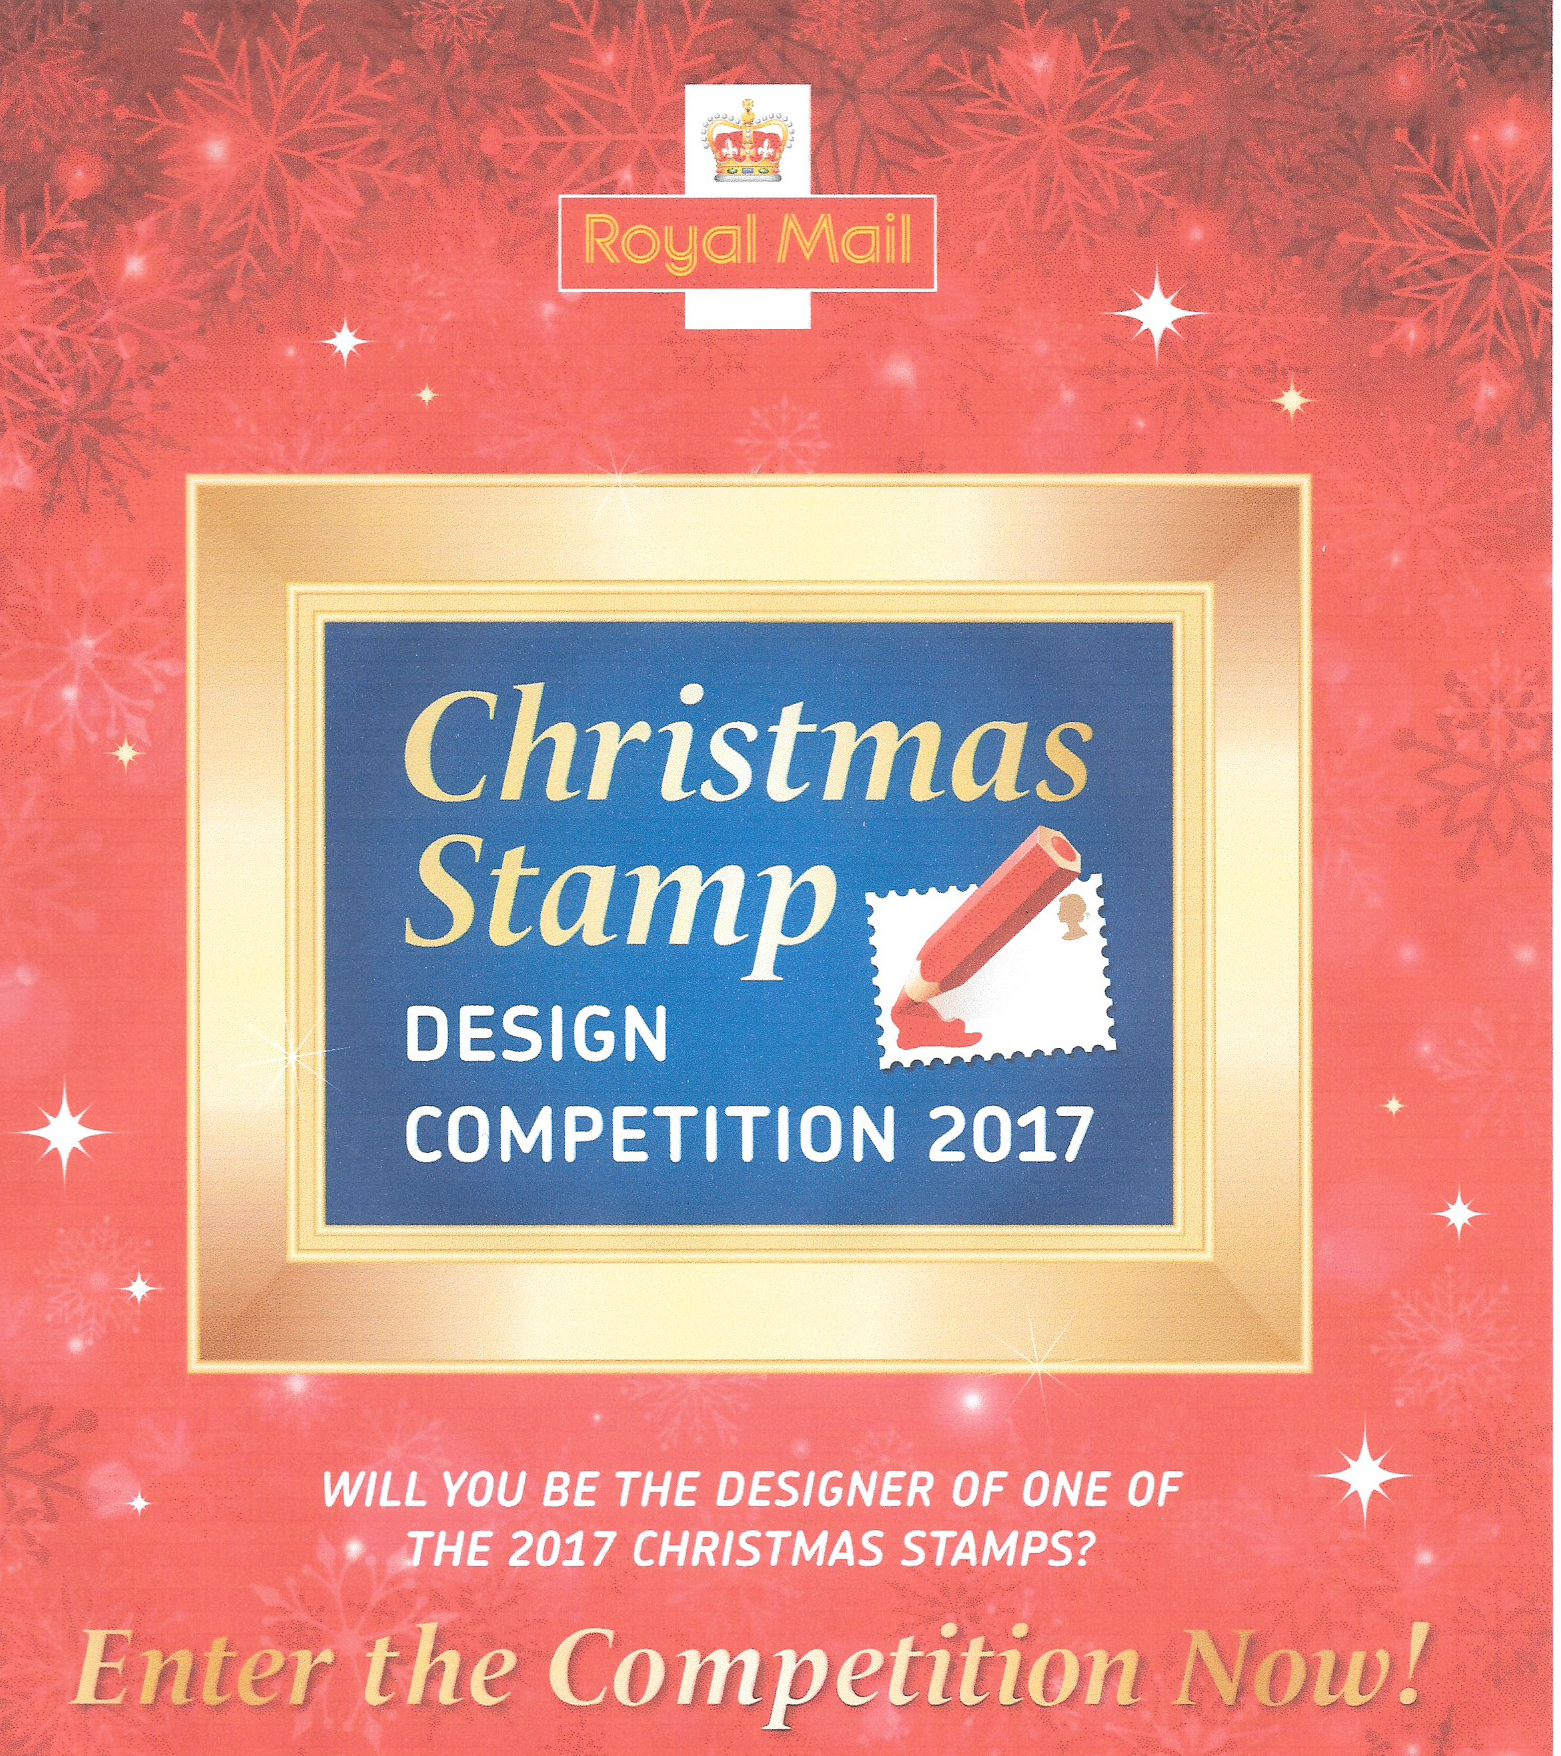 royal mails christmas stamp design competition 2017 poster image